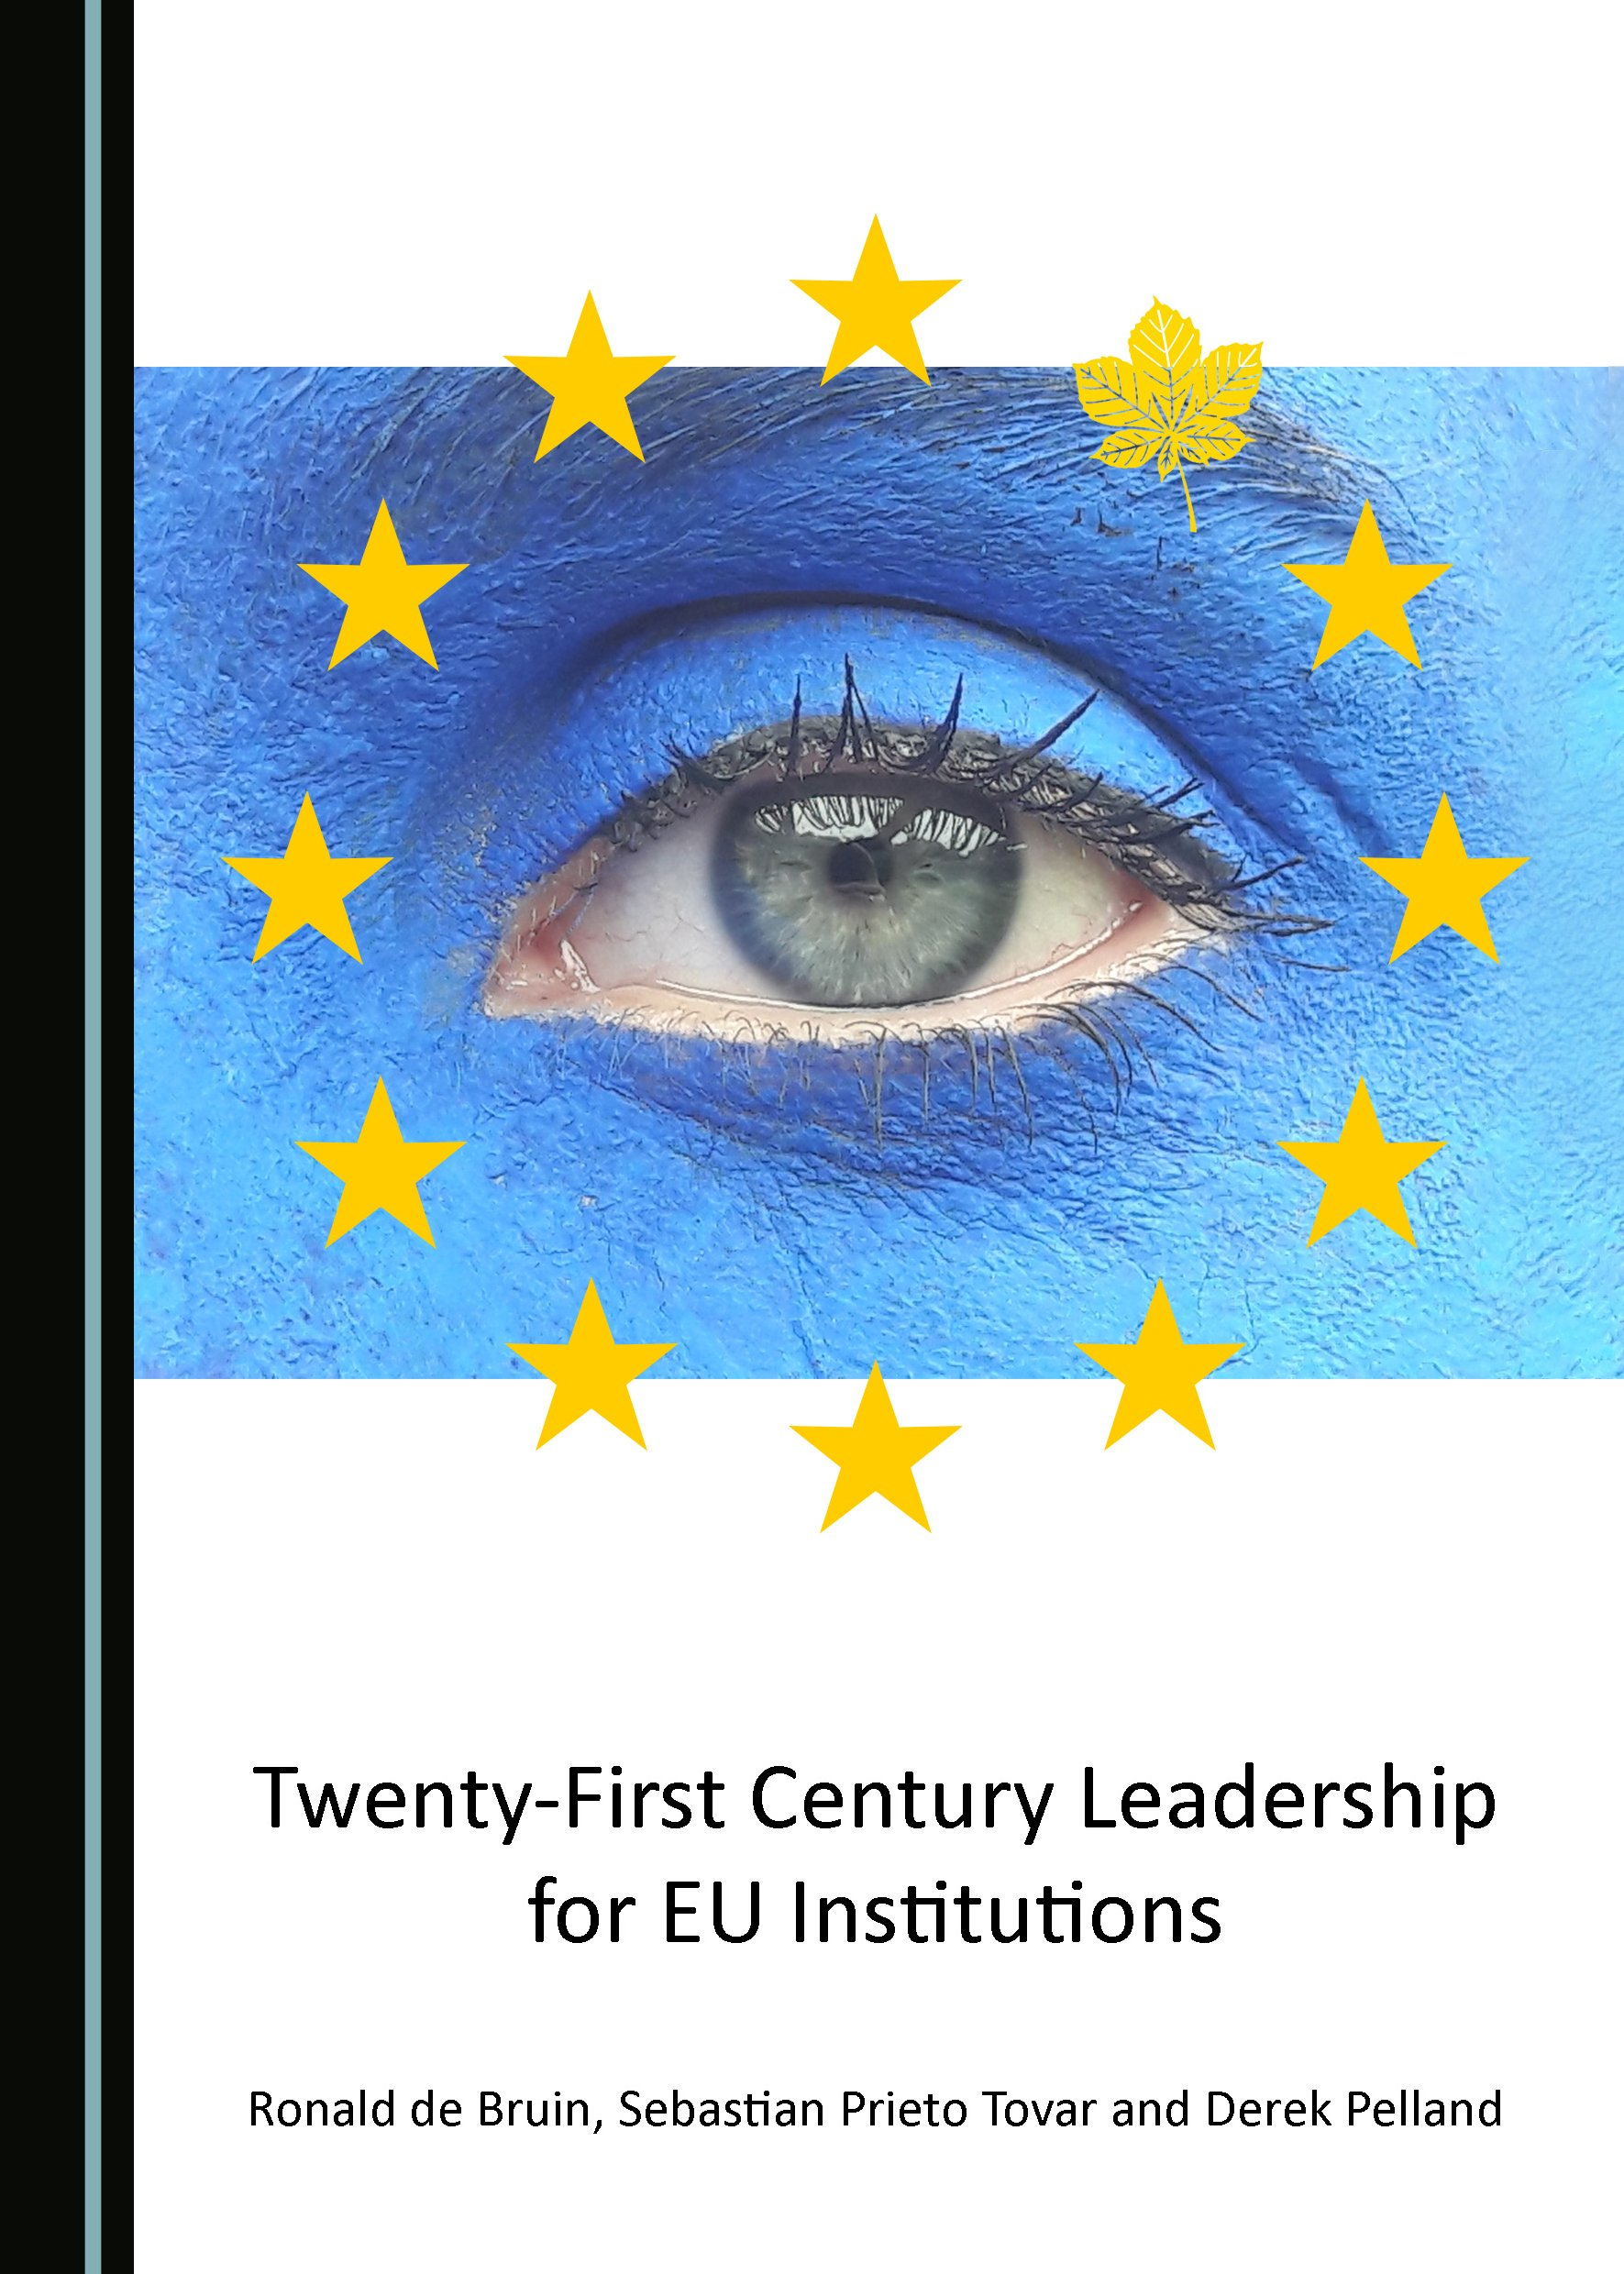 Twenty-First Century Leadership for EU Institutions